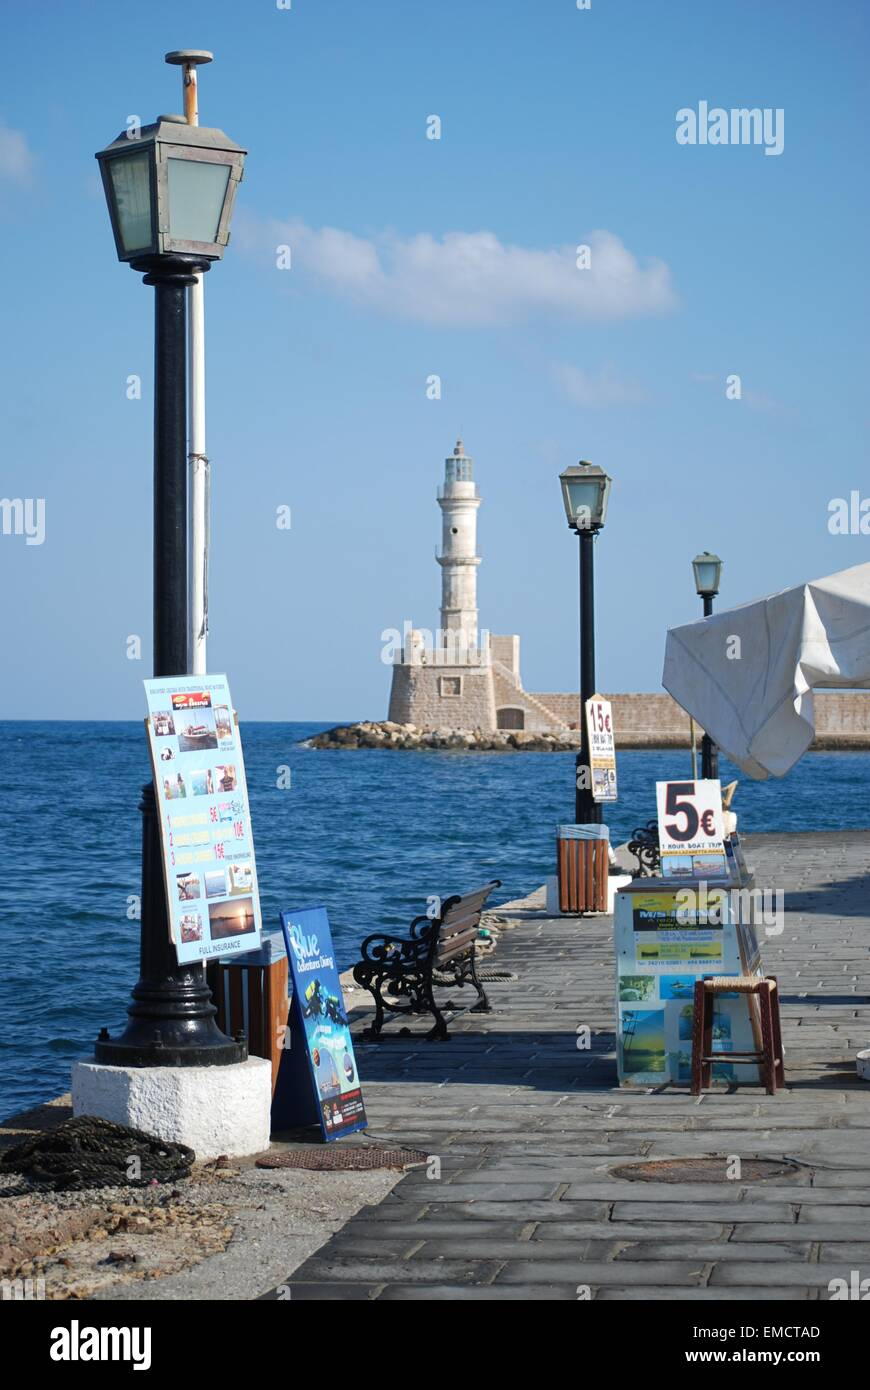 Boat trip promotion posters on the harbour front at Chania, Crete, Greece. - Stock Image